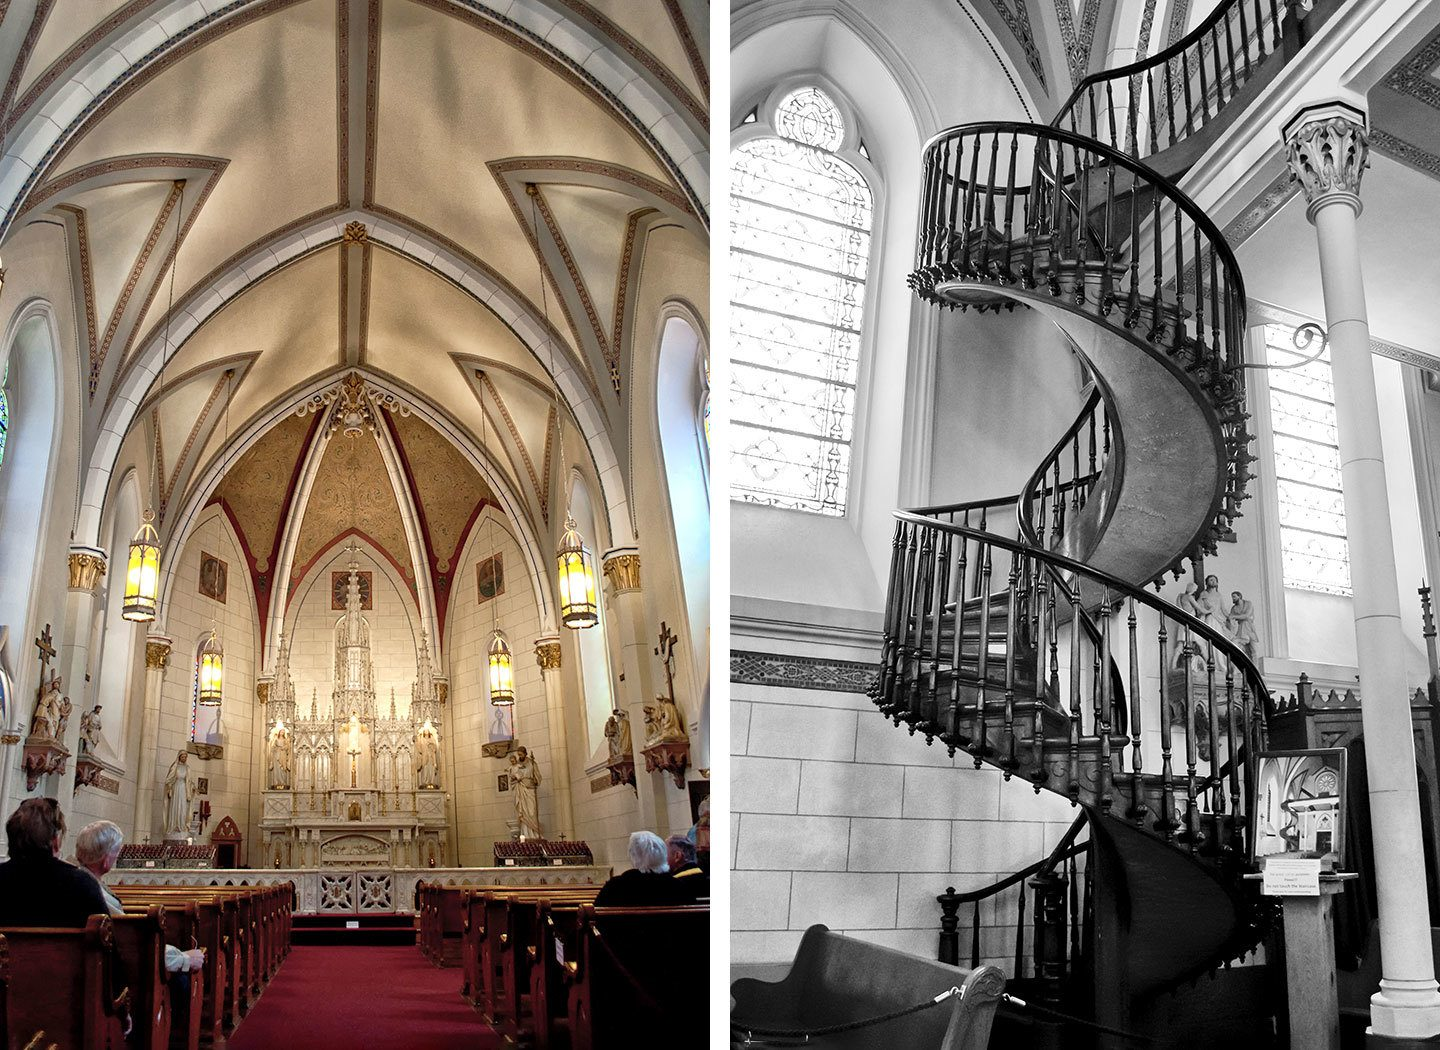 Inside the Loretta Chapel and the miraculous staircase, Santa Fe